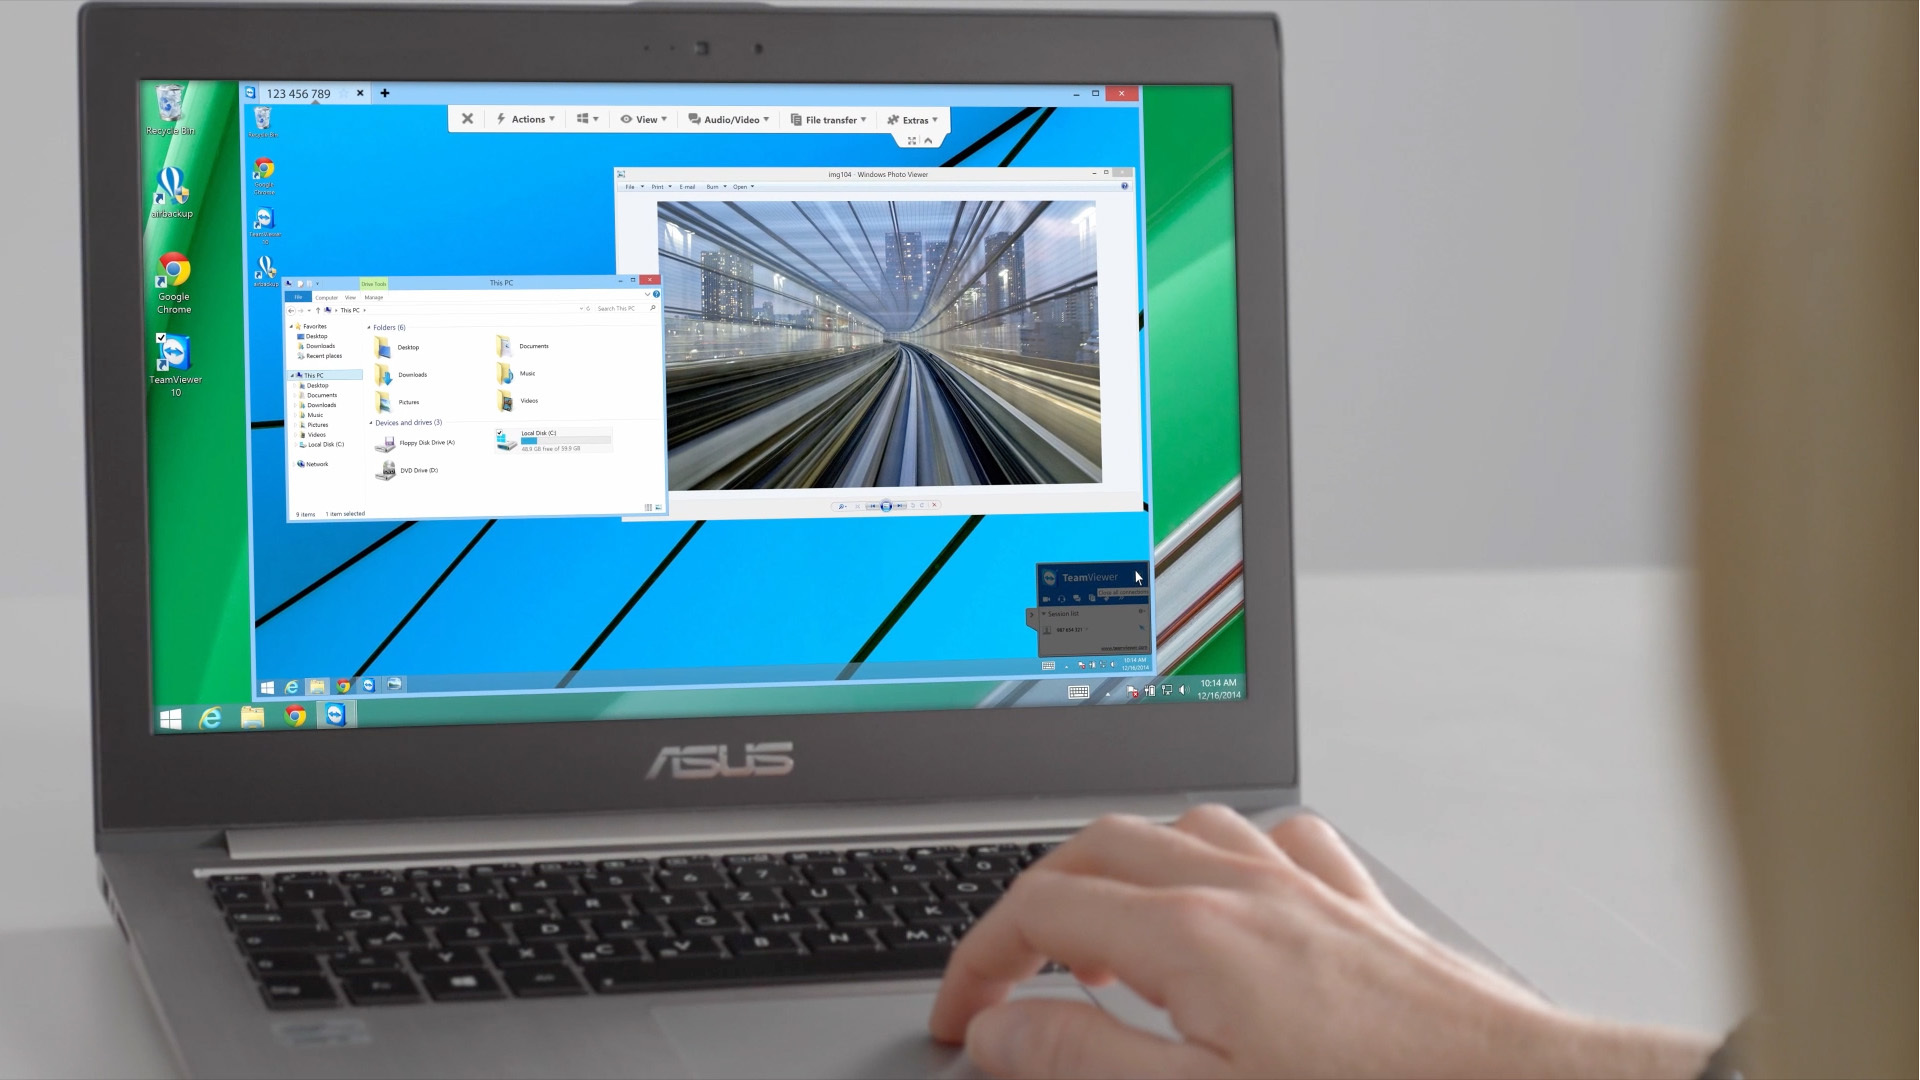 Getting Started with TeamViewer - Remote Control